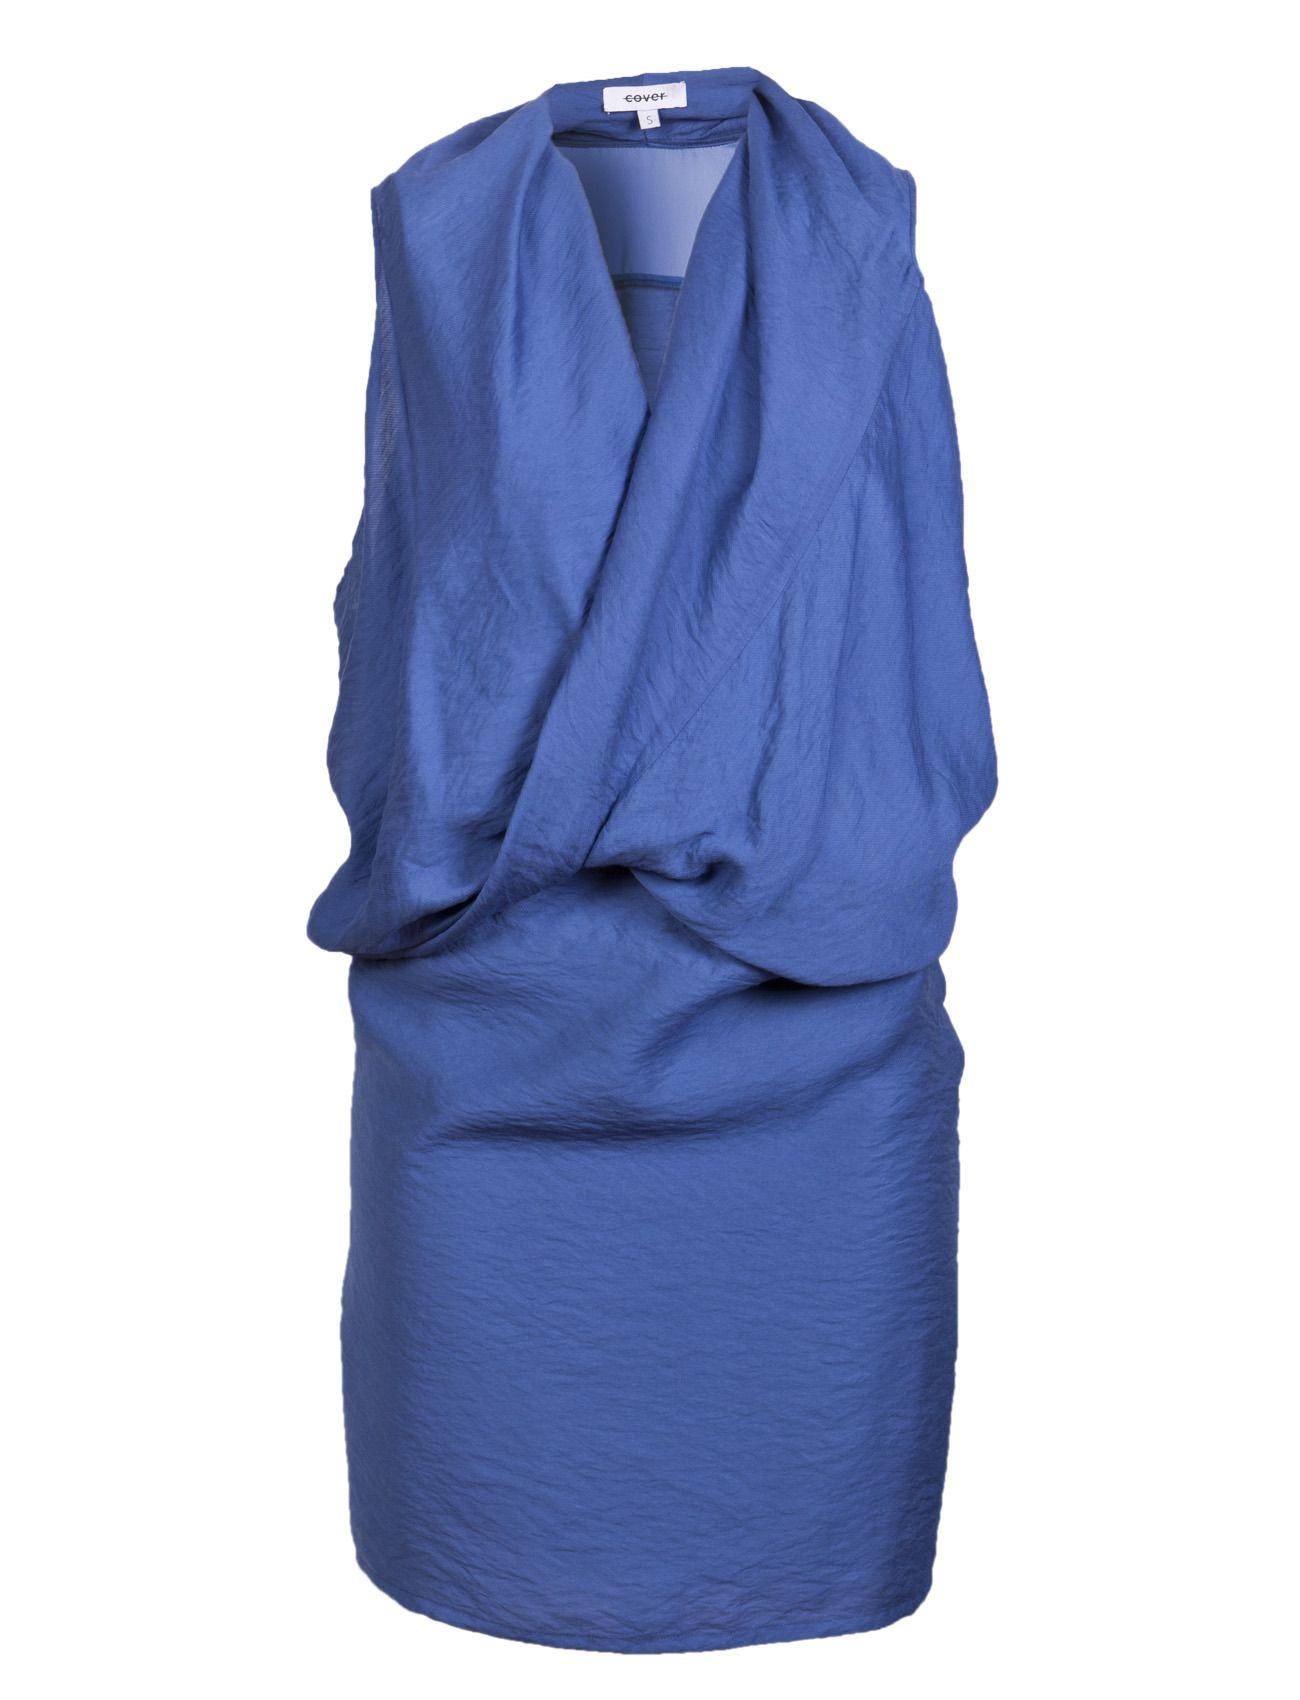 Akira dress - A wrapped and draped-front dress from cover, is a stylish core essential in the wardrobe. It can be dressed up, down or anything in-between, and functions for countless occasions.   *Sleeveless  *Above-the-knee cut